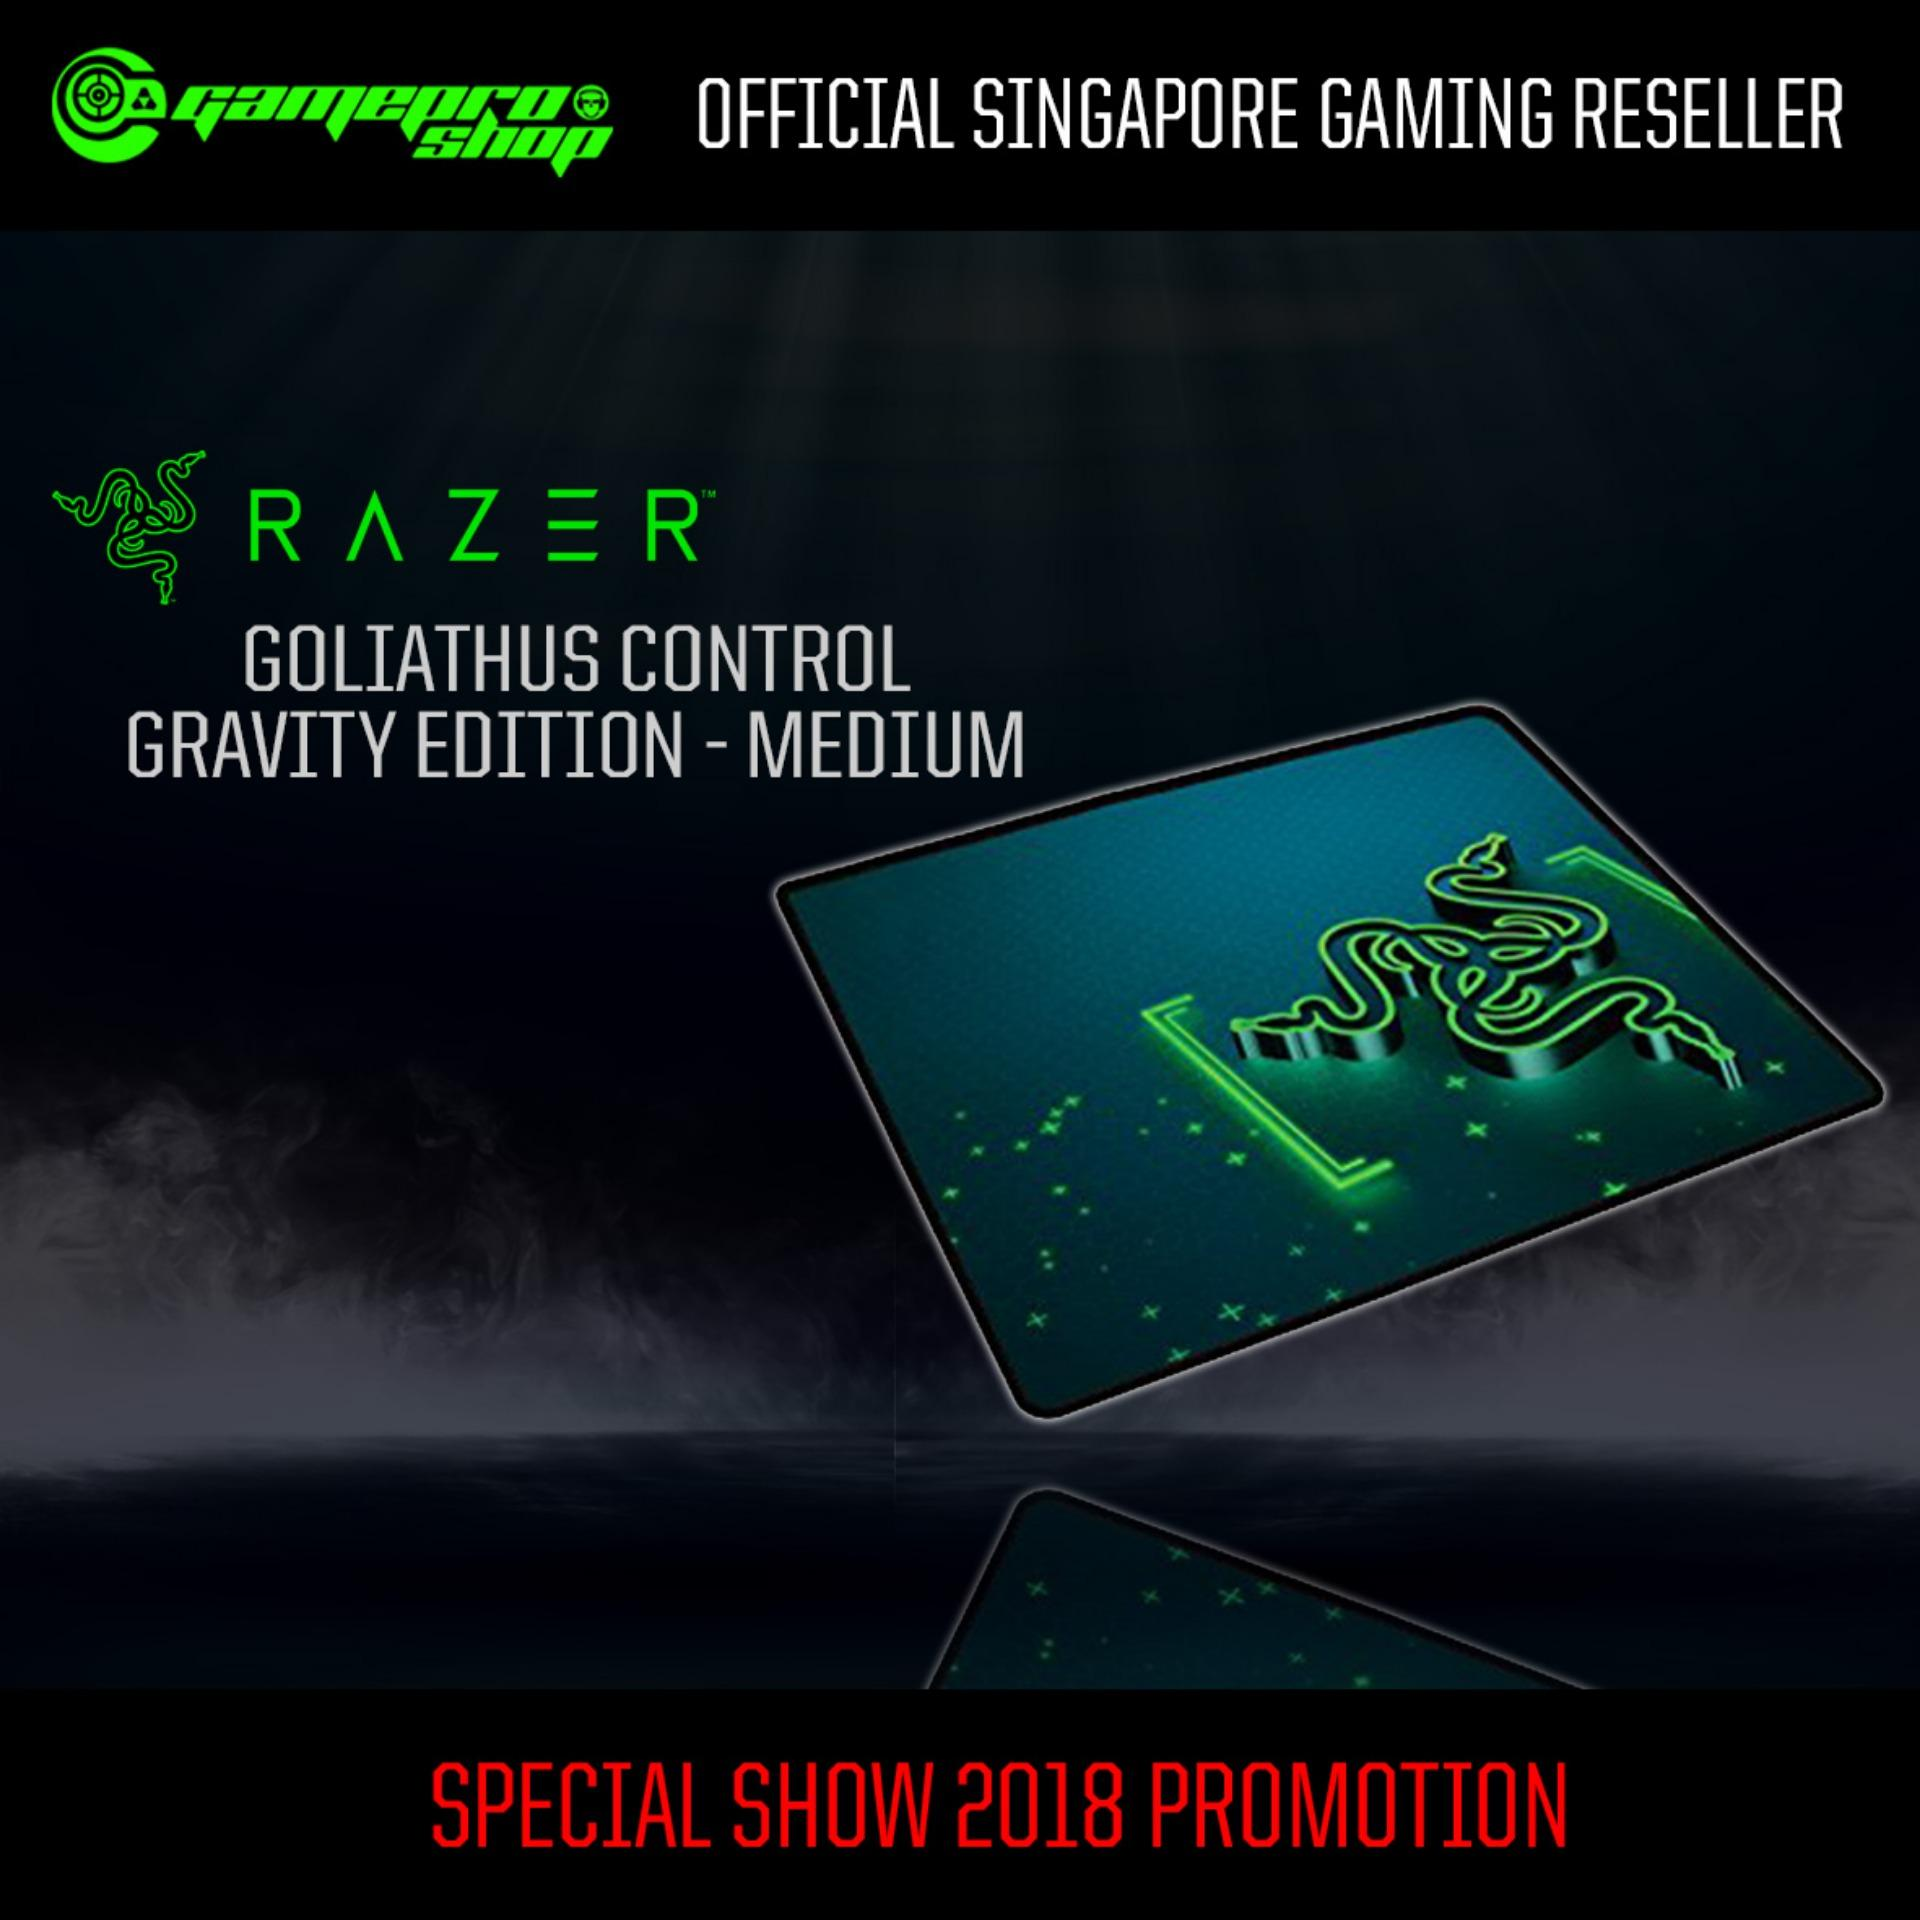 Who Sells Razer Goliathus Control Gravity Edition Medium Gss Promo The Cheapest